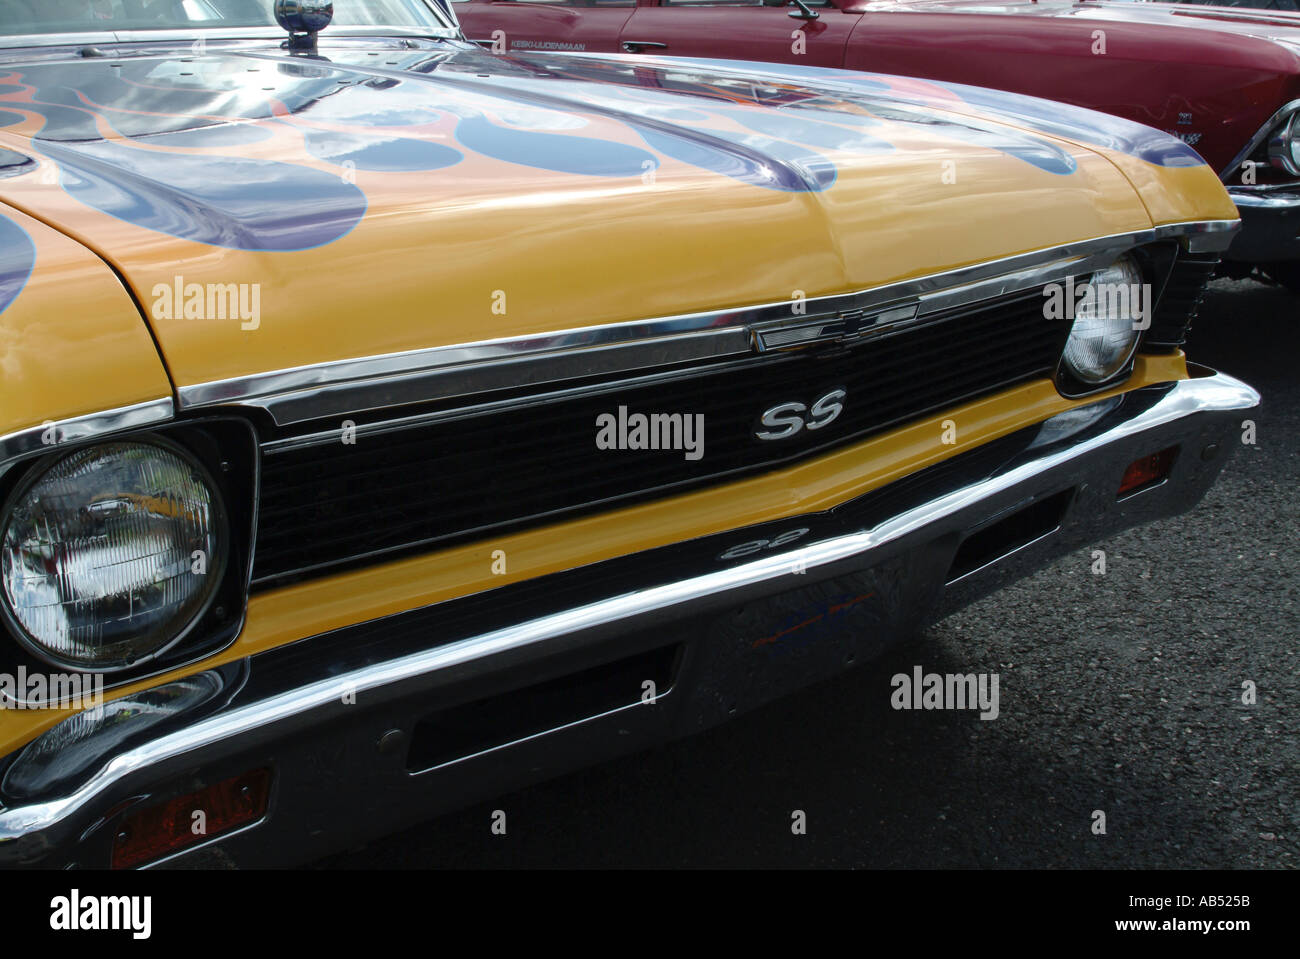 Chevy Nova 1968 Chevrolet Muscle Car Stock Photo 741979 Alamy